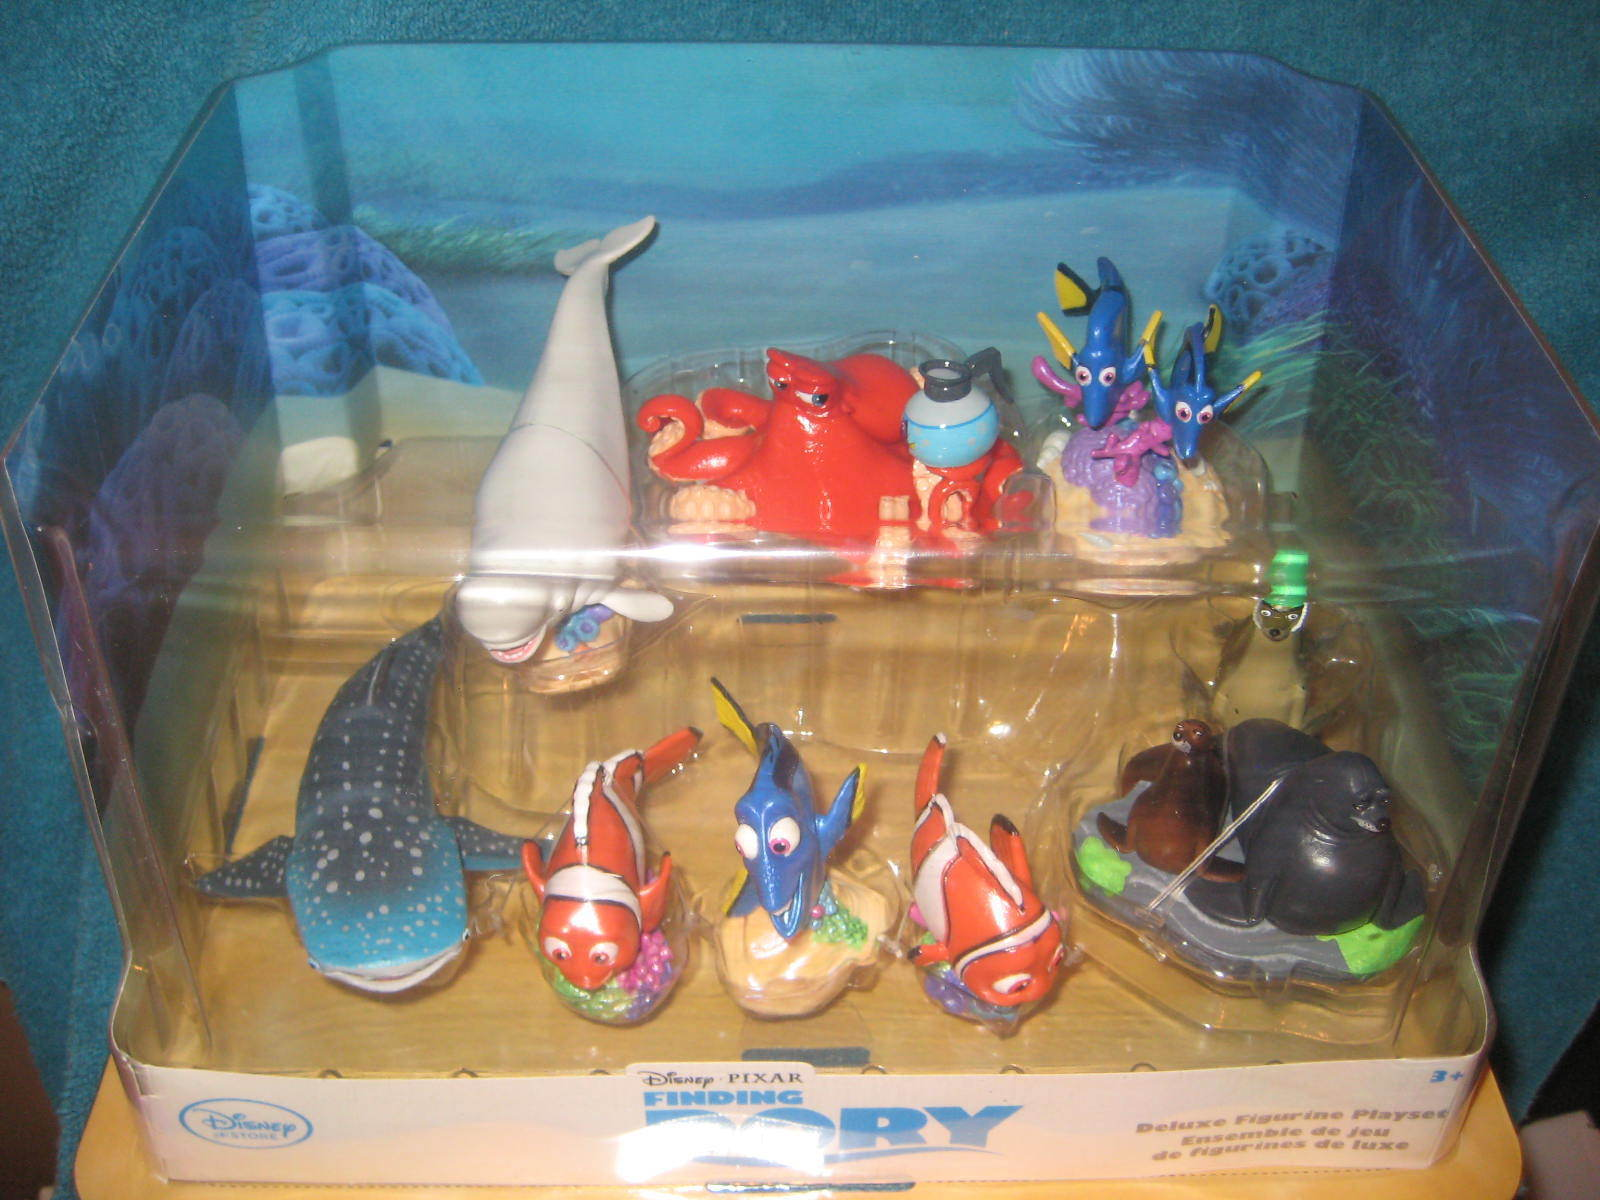 DISNEY STORE FINDING DORY DELUXE 9 PIECE PLAYSET FIGURINE CAKE TOPPER NEW